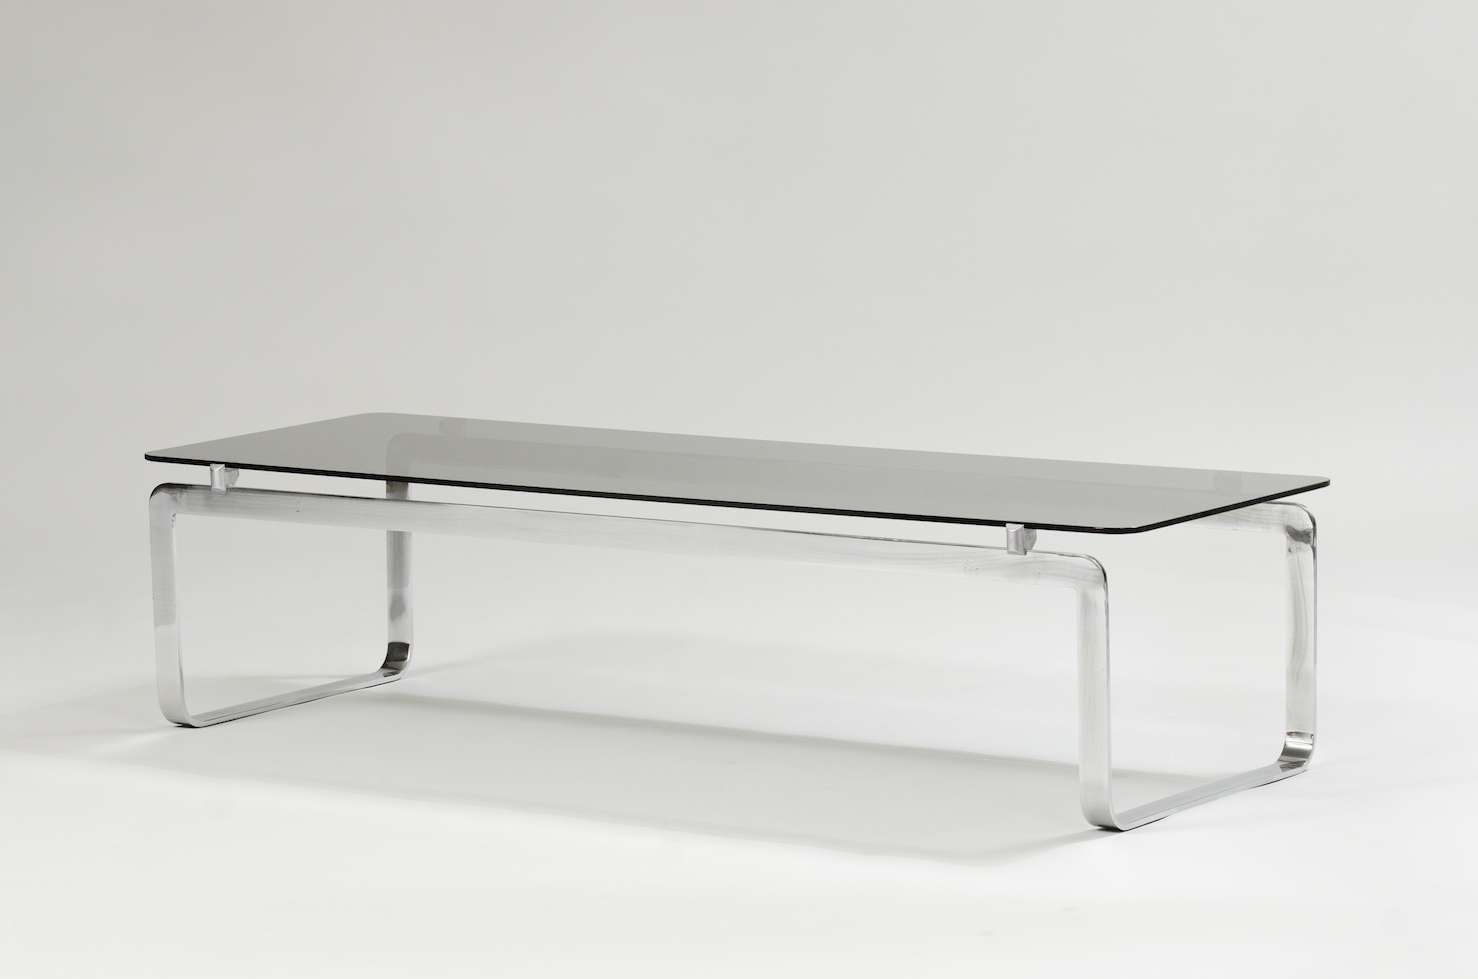 Italian Coffee Table In Chrome And Smoked Glass For Sale At Pamono With  Famous Italian Coffee